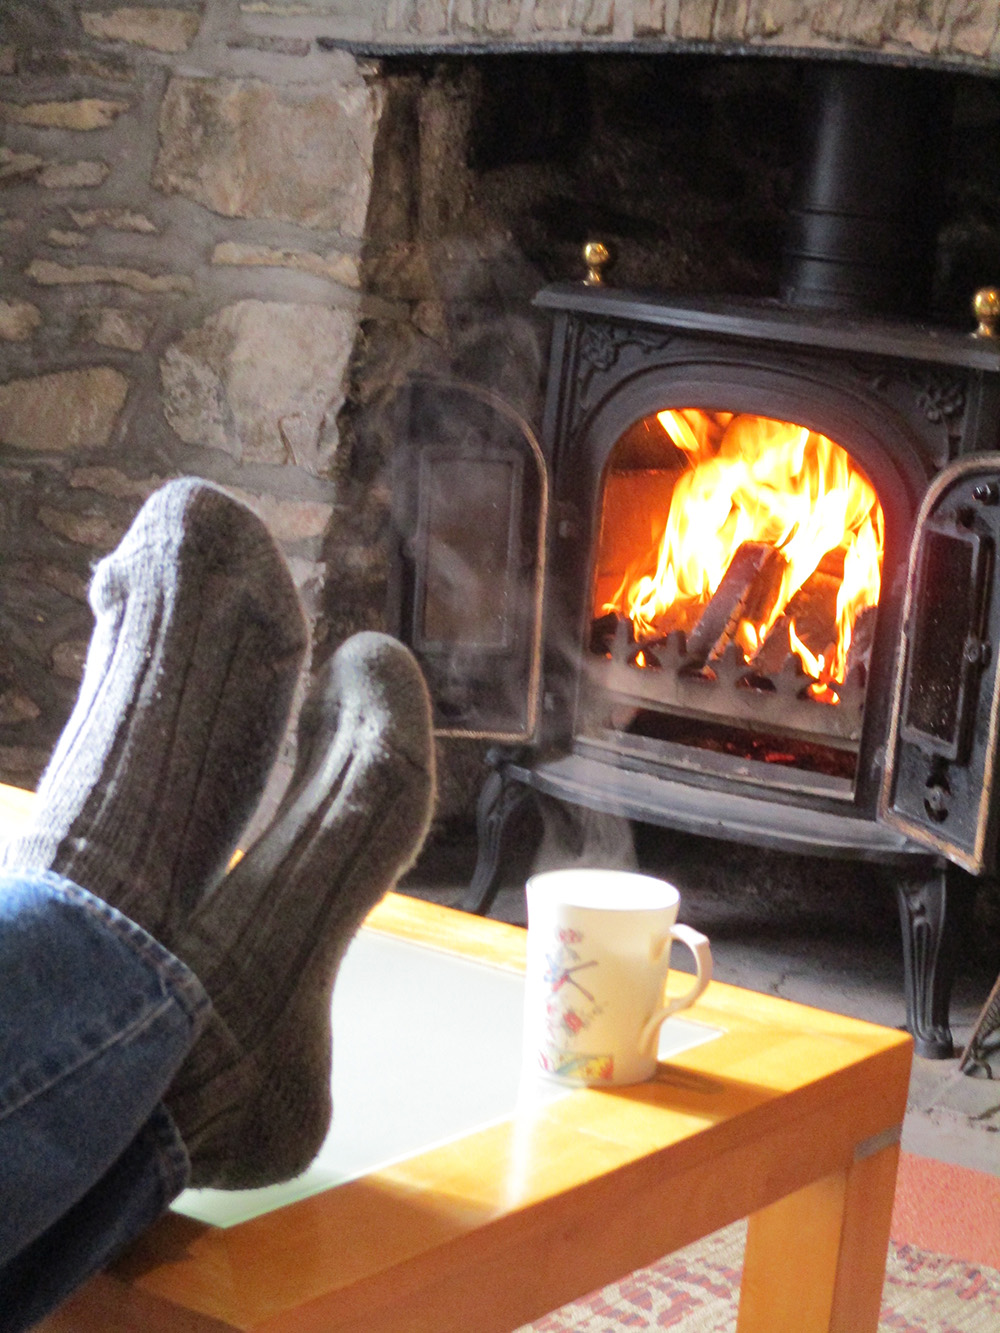 Relax with tea and fire